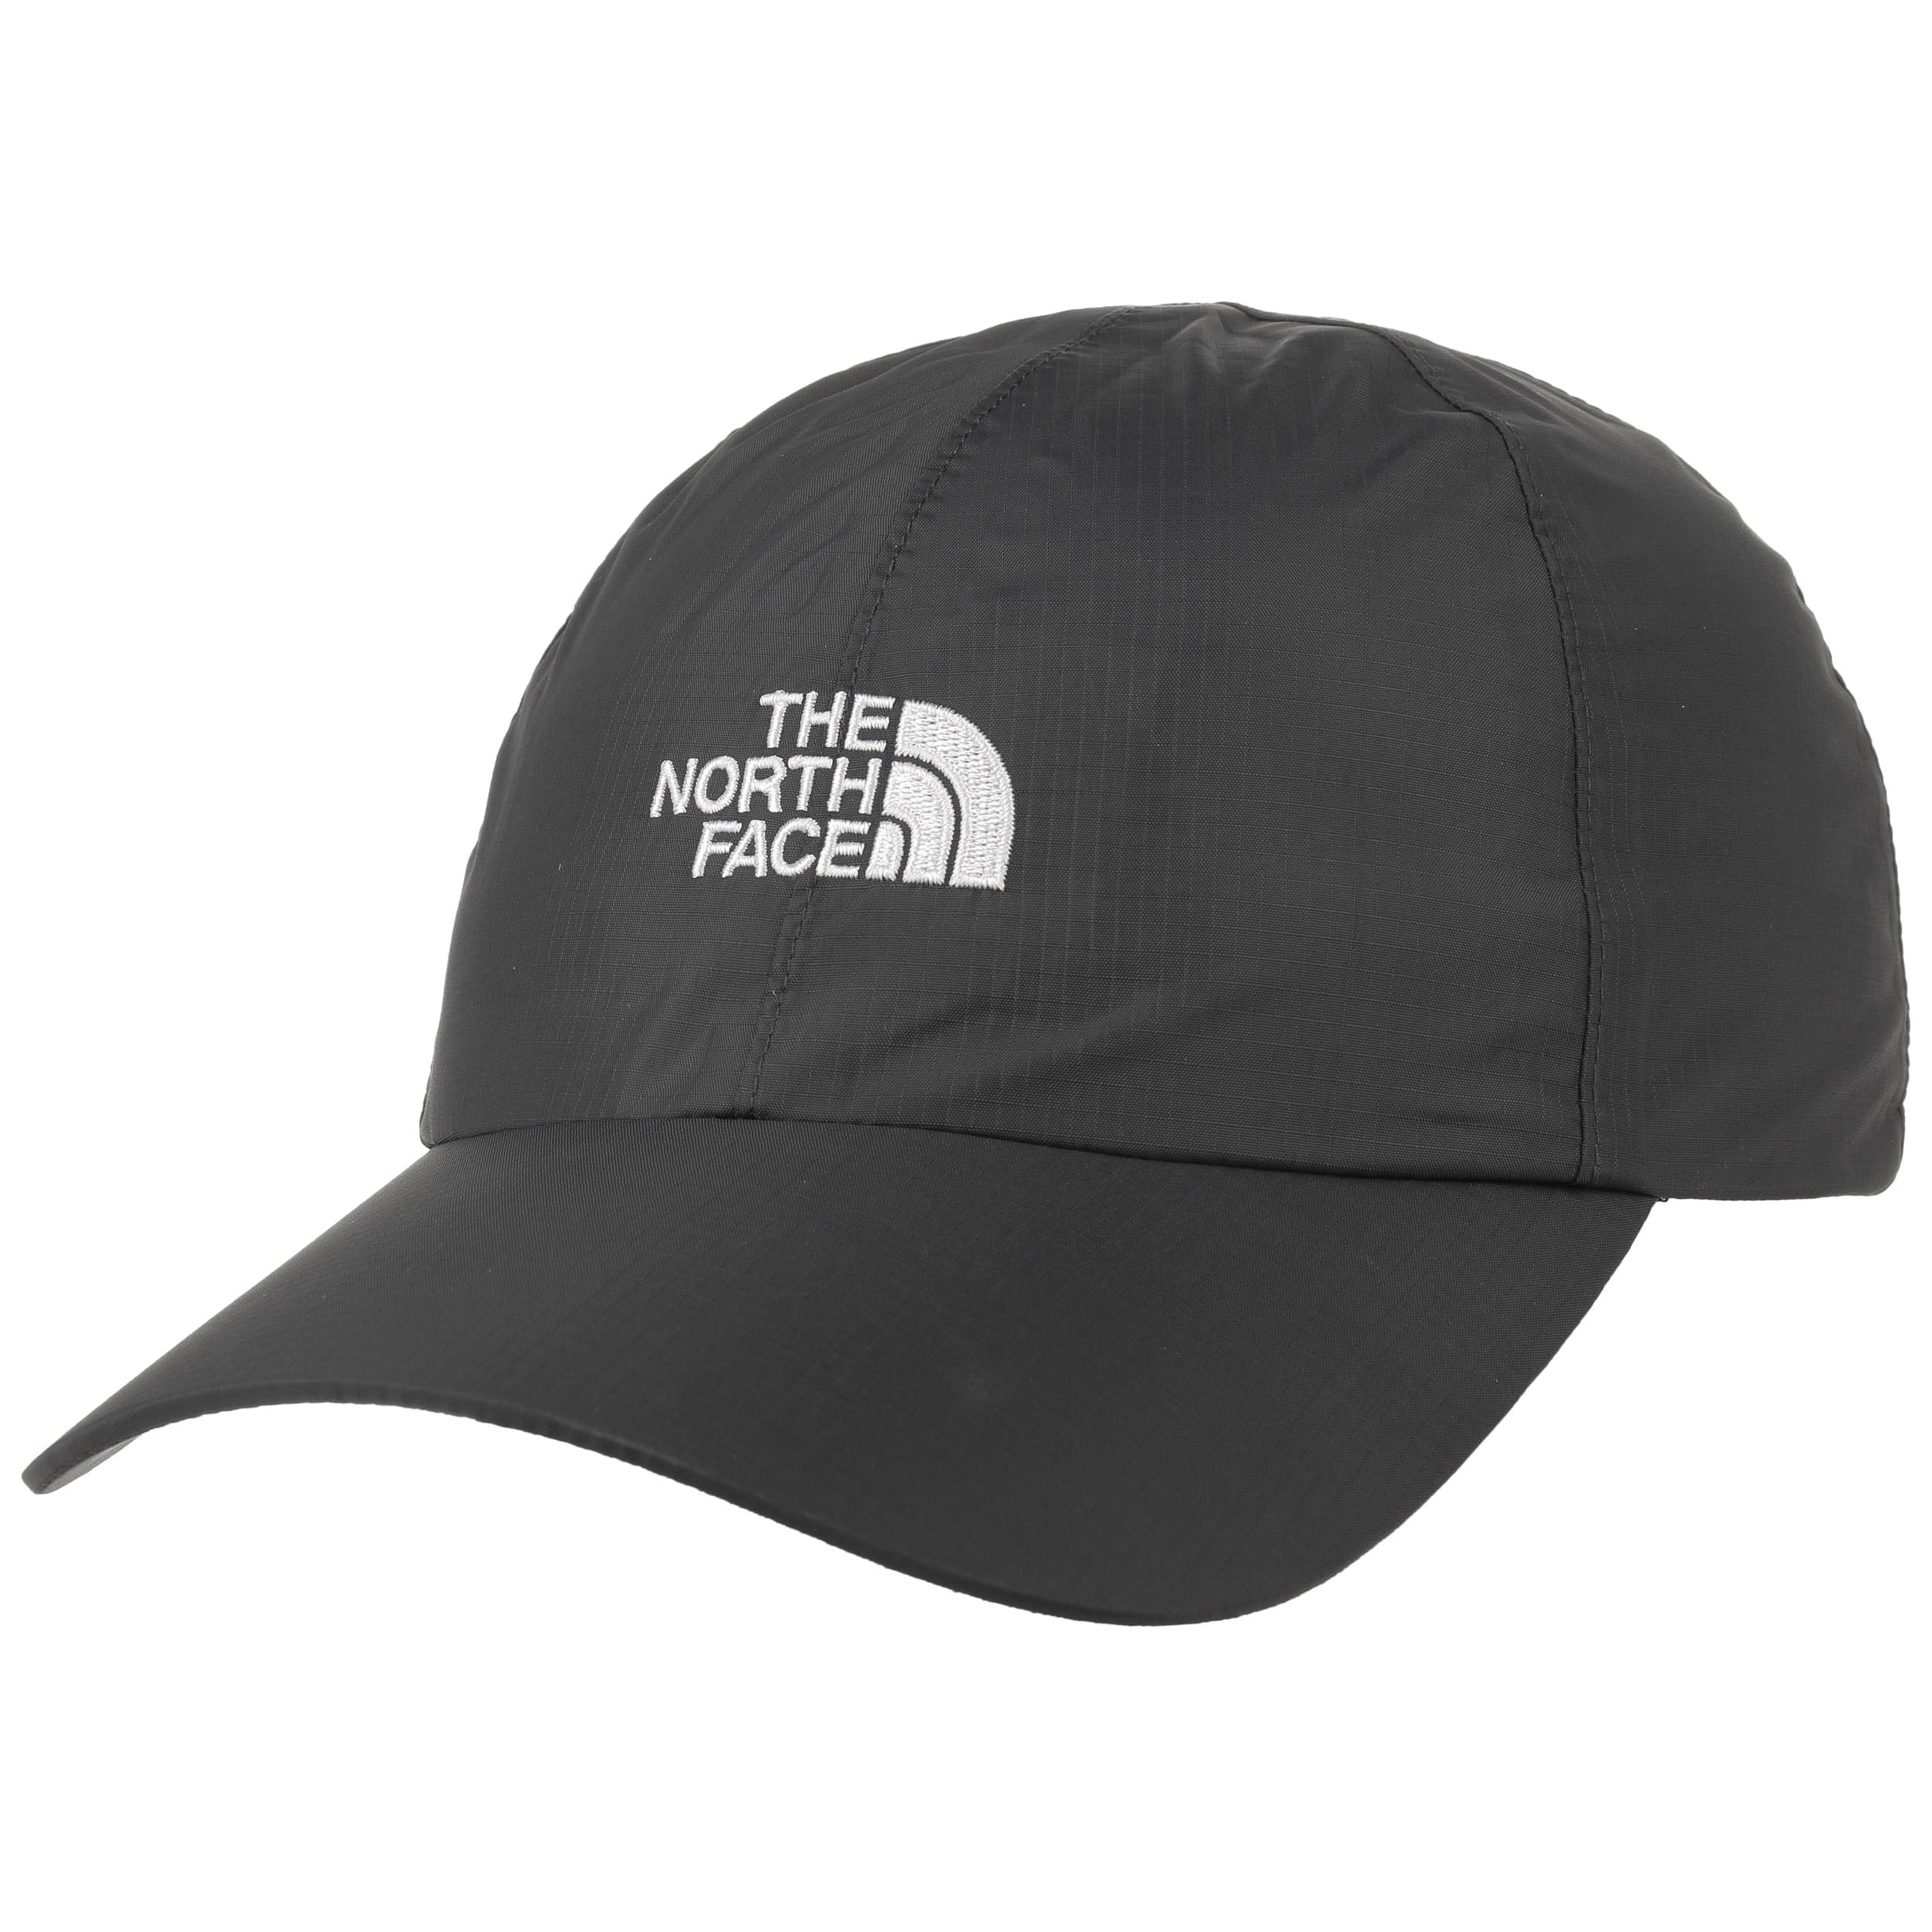 215f735bc8 Casquette Dryvent Logo by The North Face, EUR 32,95 --> Chapeaux ...